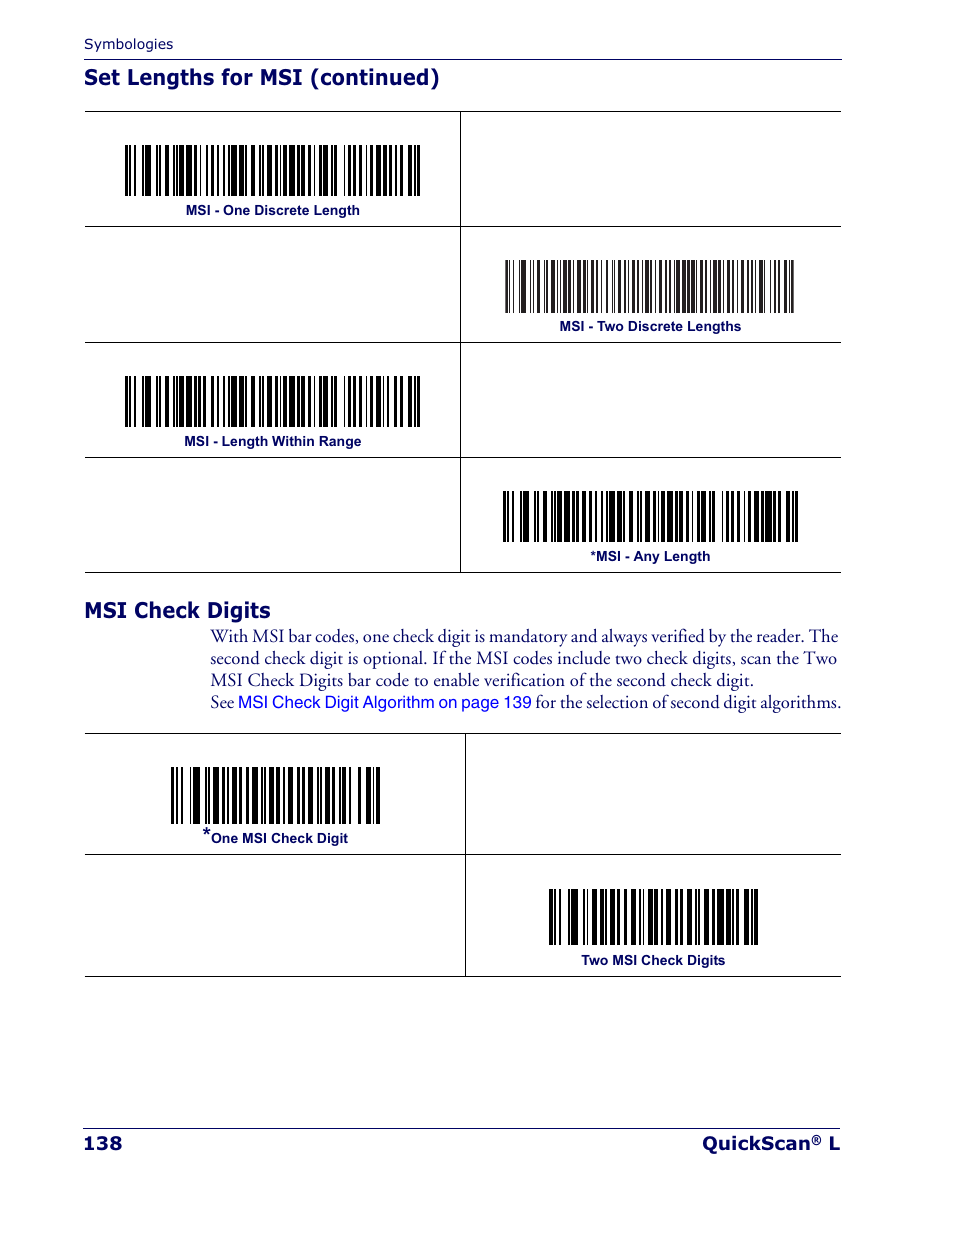 Set lengths for msi (continued) msi check digits | Datalogic Scanning  QUICKSCAN QD 2300